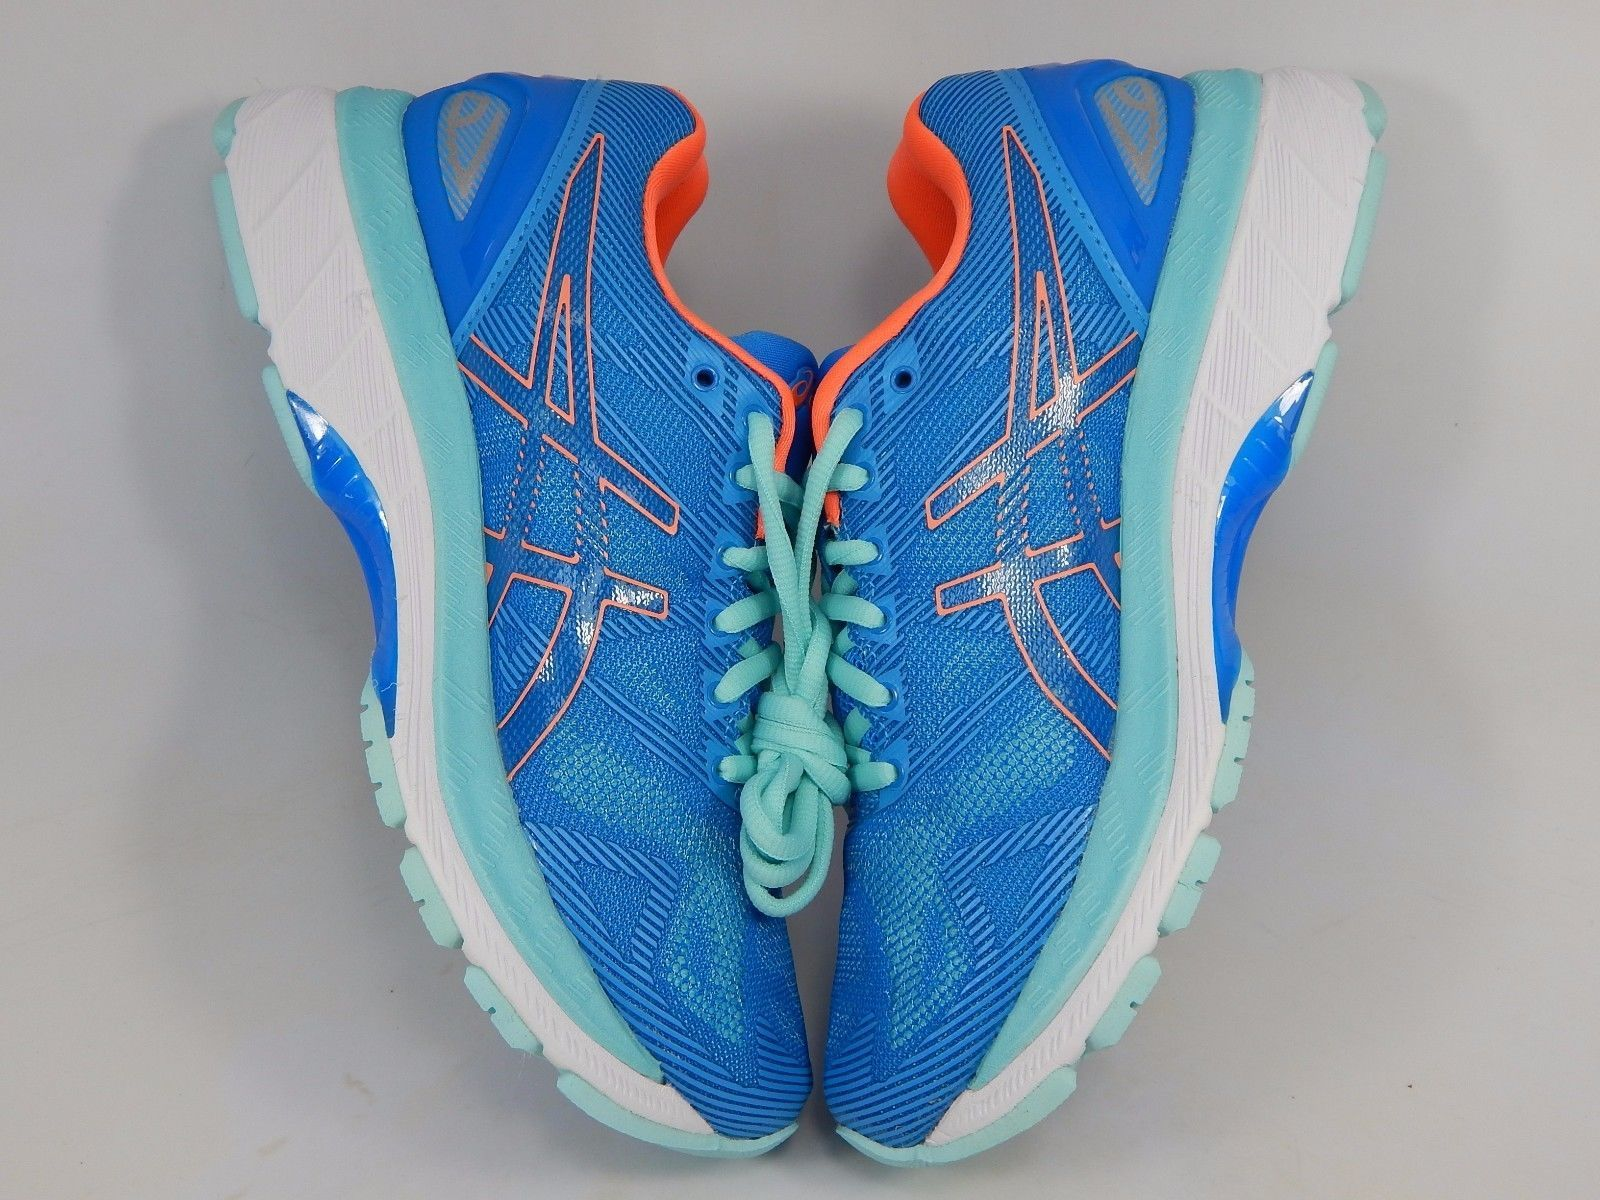 Asics Gel Nimbus 19 Women's Running Shoes Size US 7 M (B) EU 38 Blue T750N